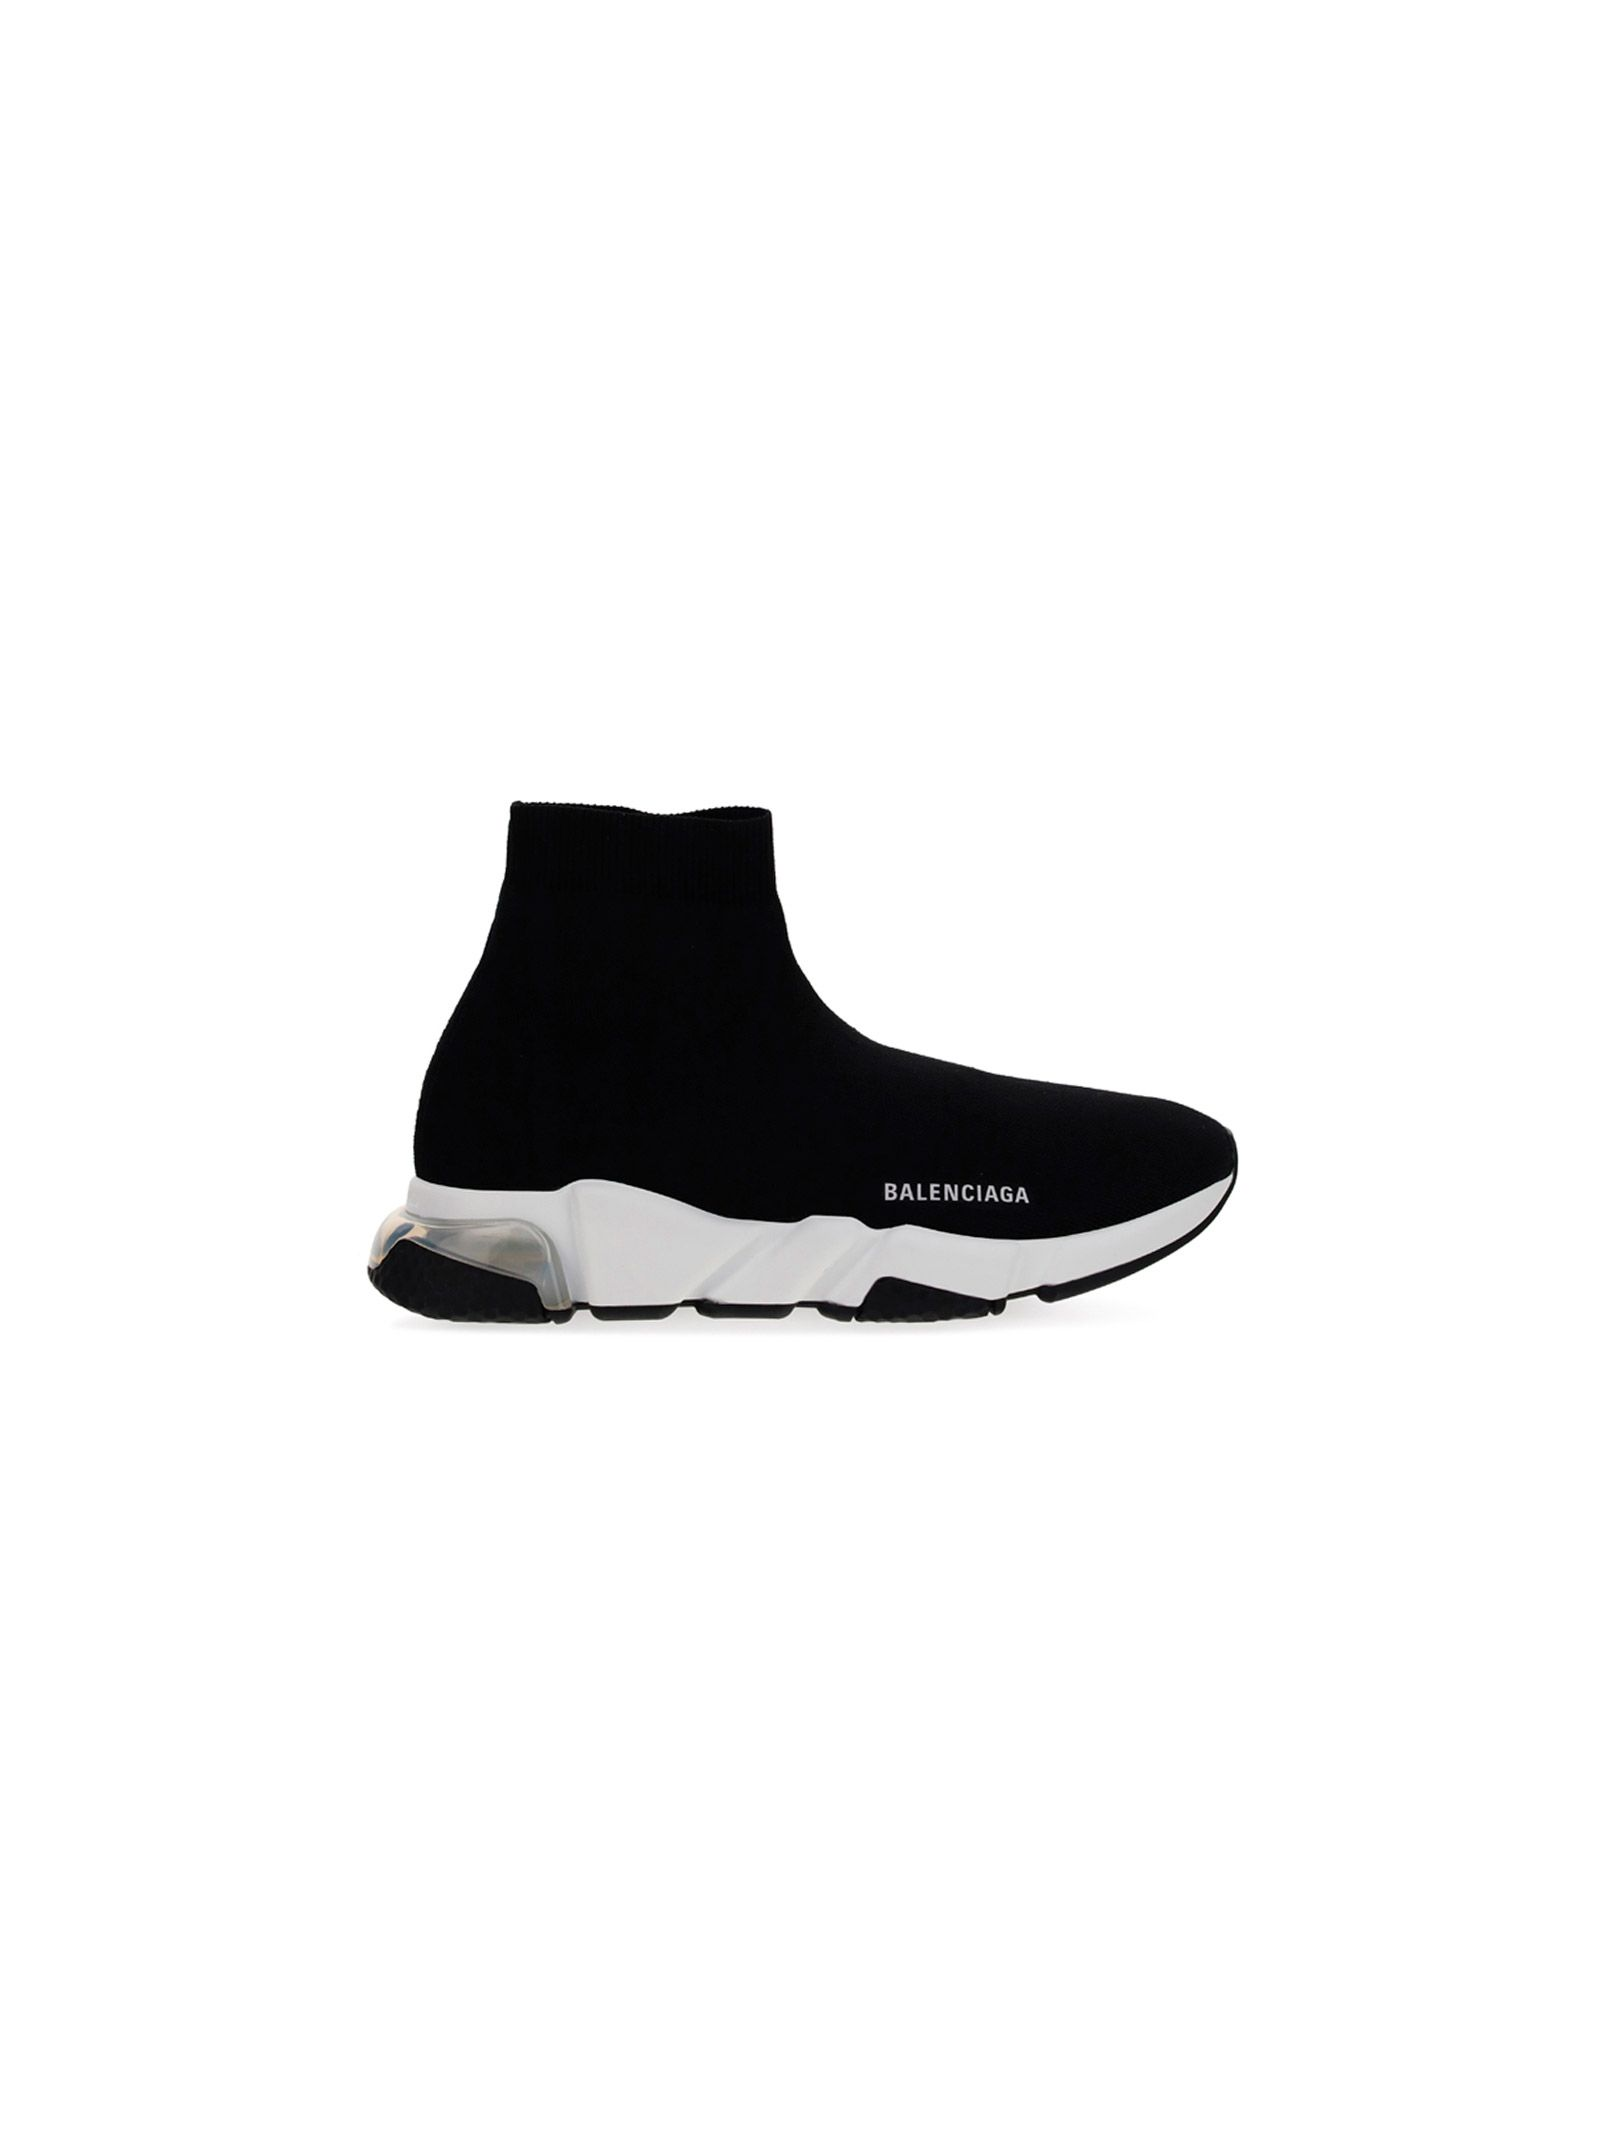 Balenciaga BALENCIAGA MEN'S BLACK SYNTHETIC FIBERS HI TOP SNEAKERS